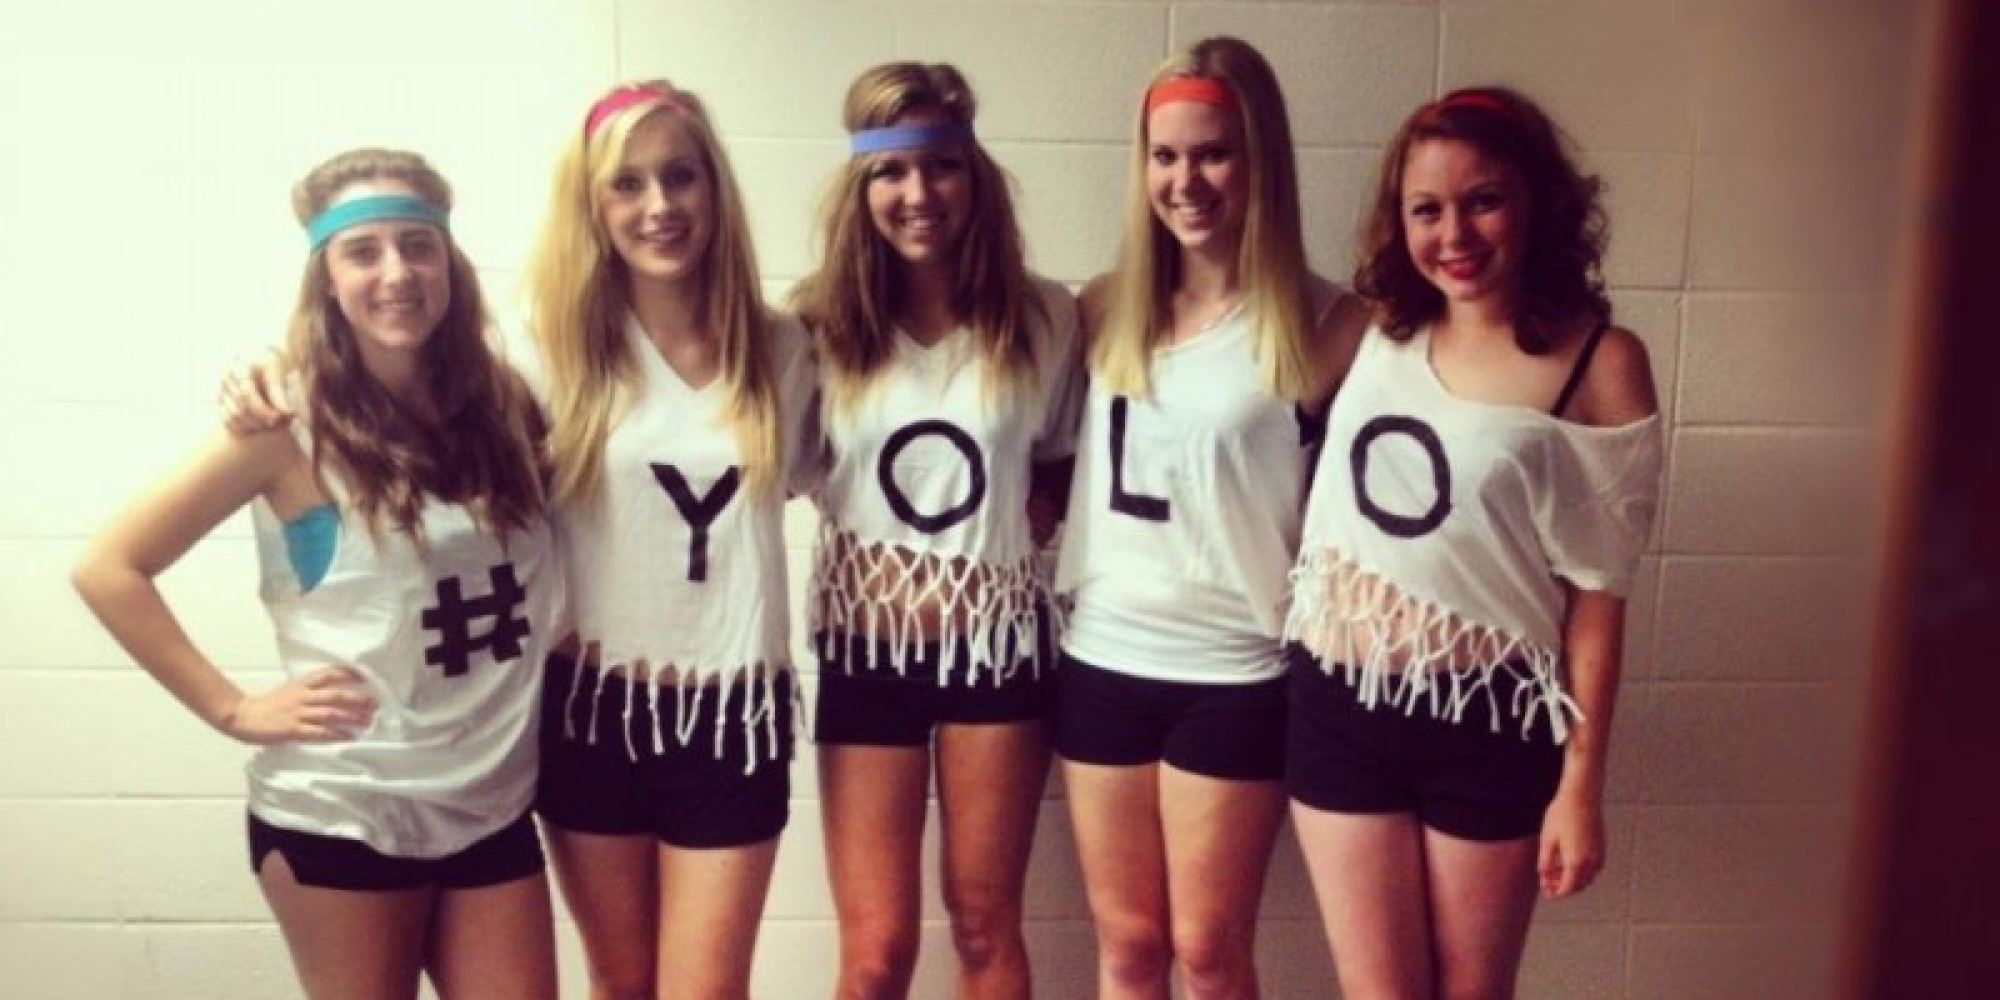 Group Costume Ideas That Are Cheap, Easy And Totally DIY ...